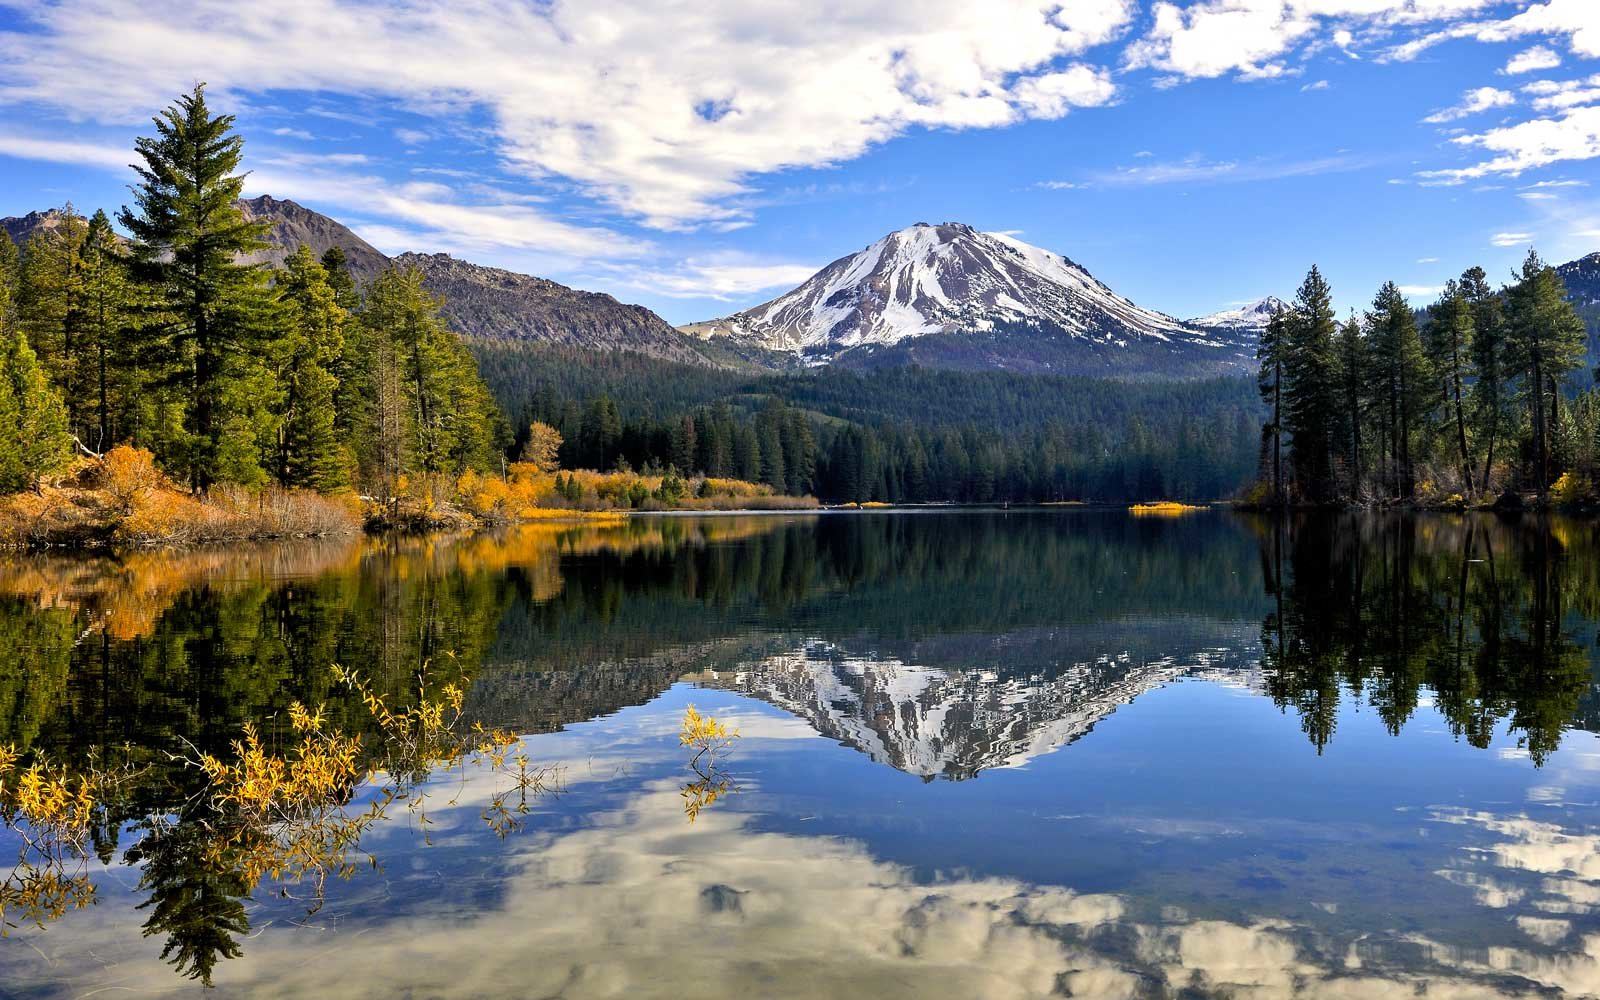 Lassen Volcano National Park: California